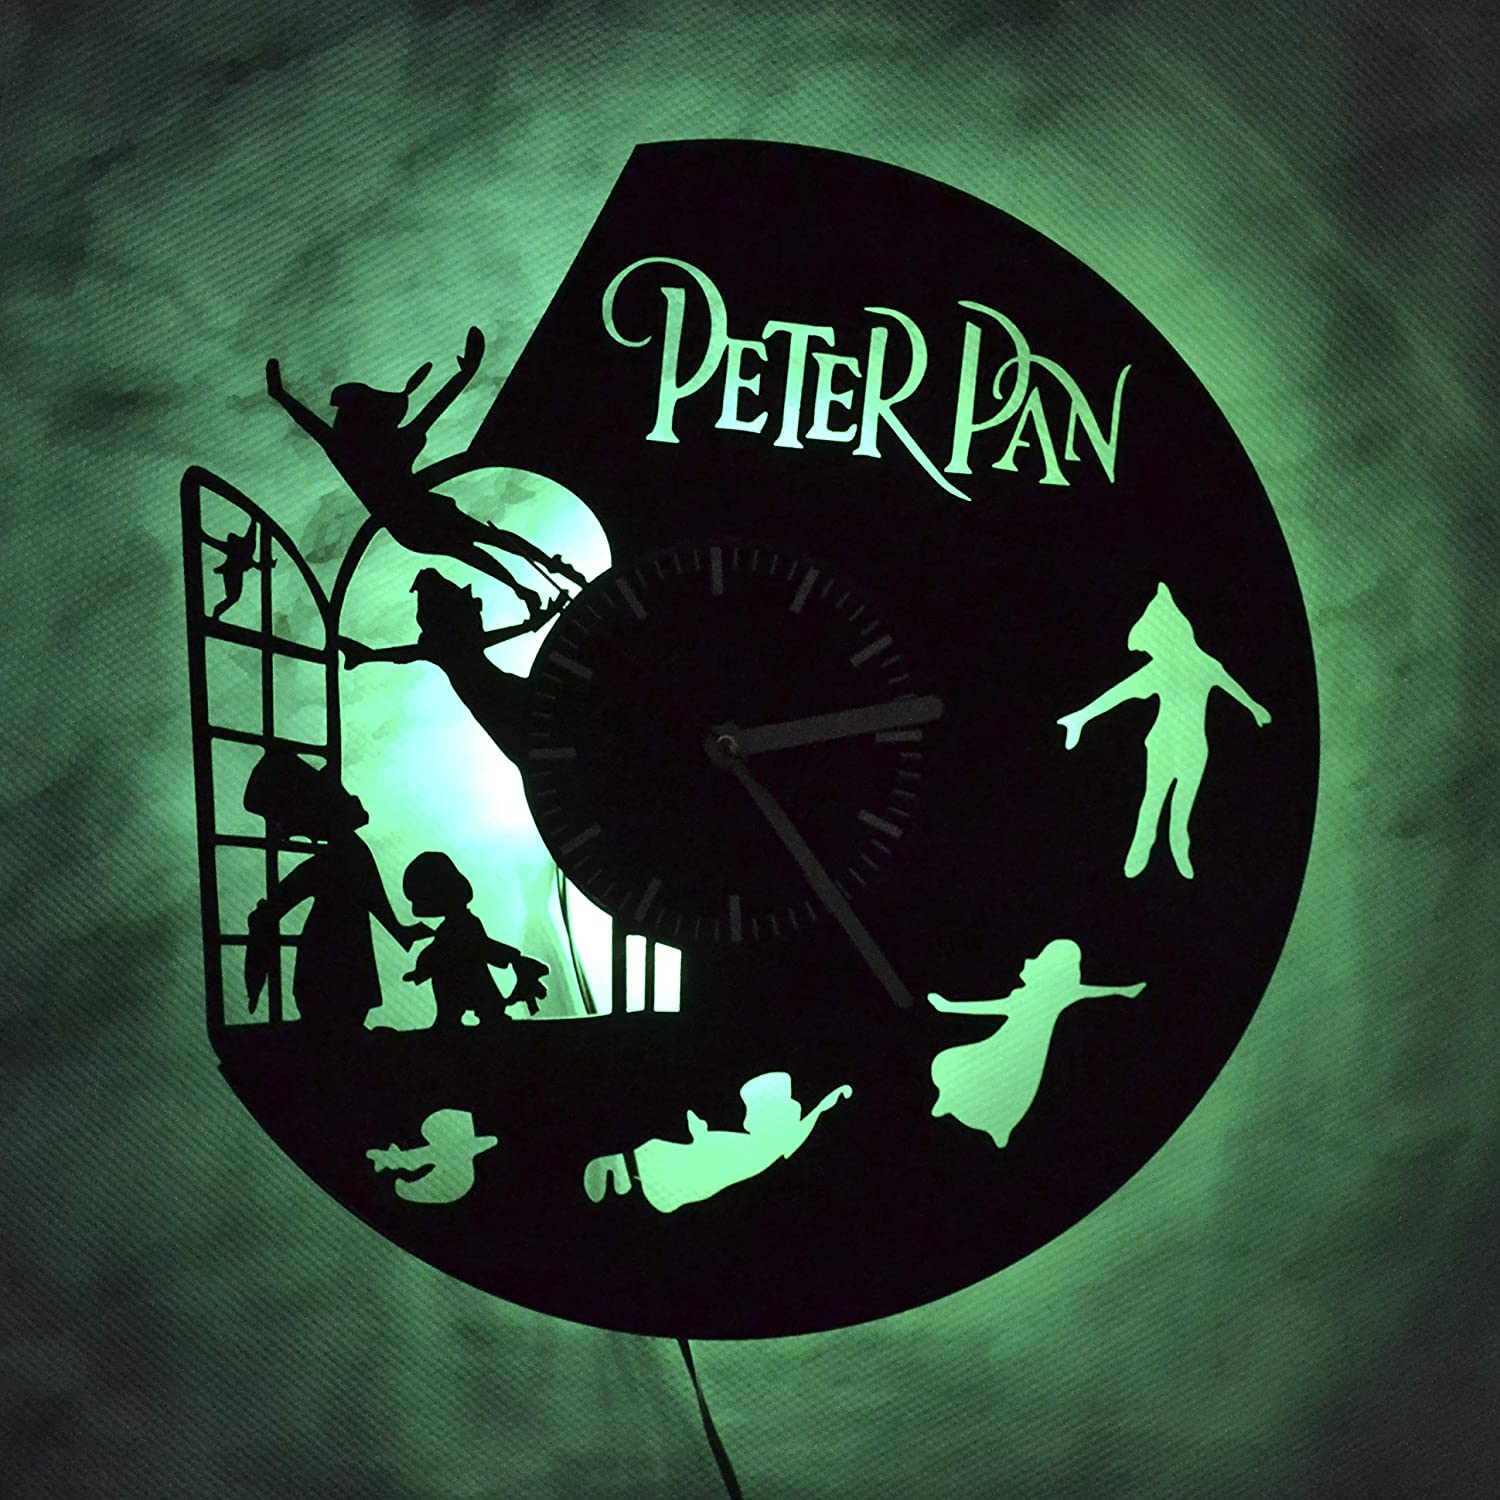 Peter Pan Fictional Character Night Light Wall Lights Vinyl Record Wall Clock The Best Home Design Idea House Decoration Vinyl Wall Light Clock Interior Lights for Home Nursery Perfect Gift